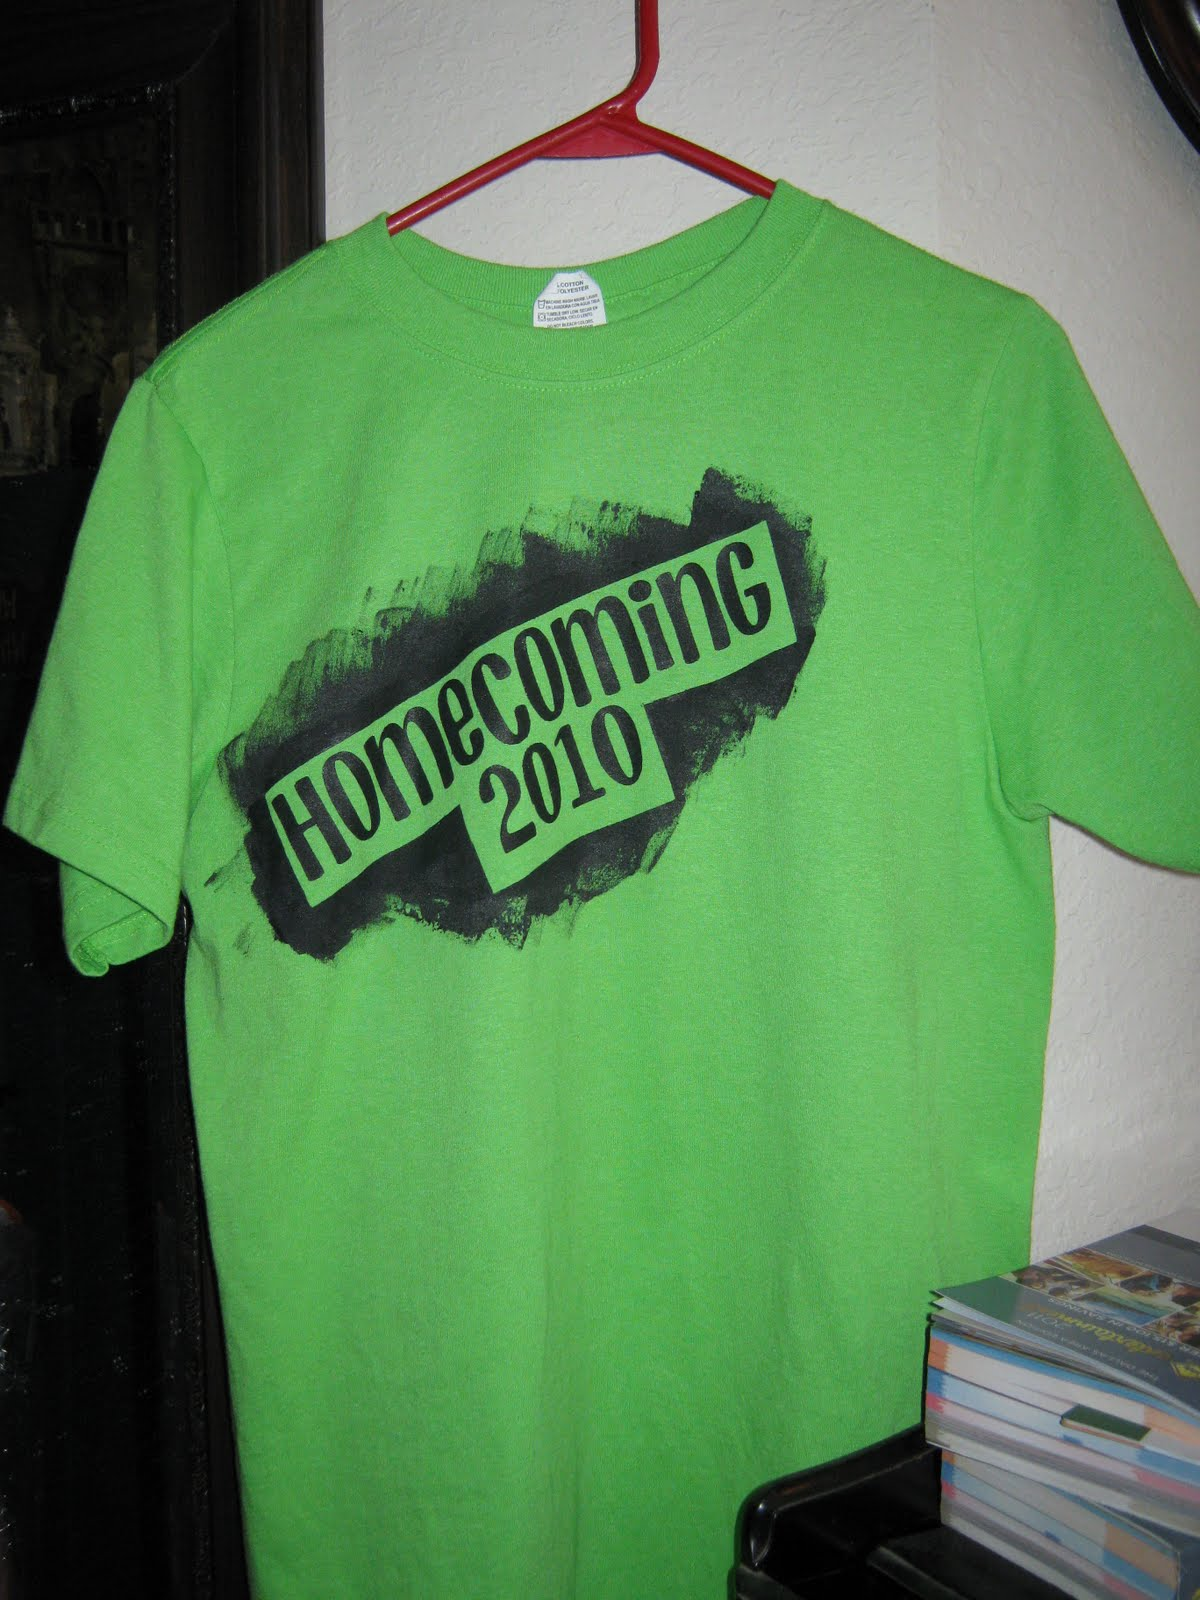 Decorating My Padded Walls Homecoming T Shirts And Mum